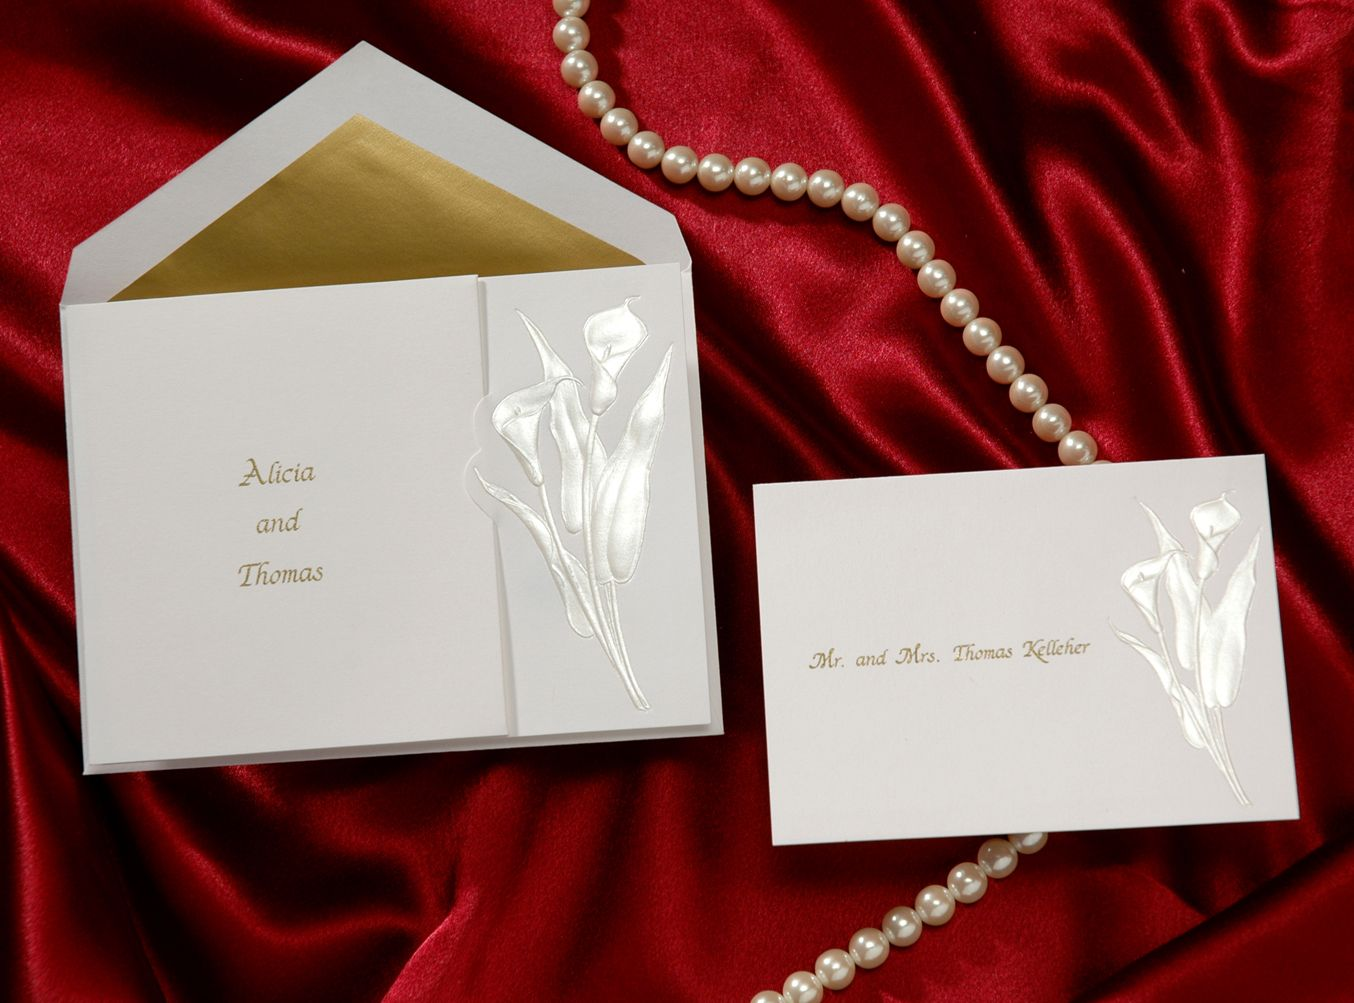 Get up to $300.00 worth of invitations FREE with your J.P. Tuxedo ...